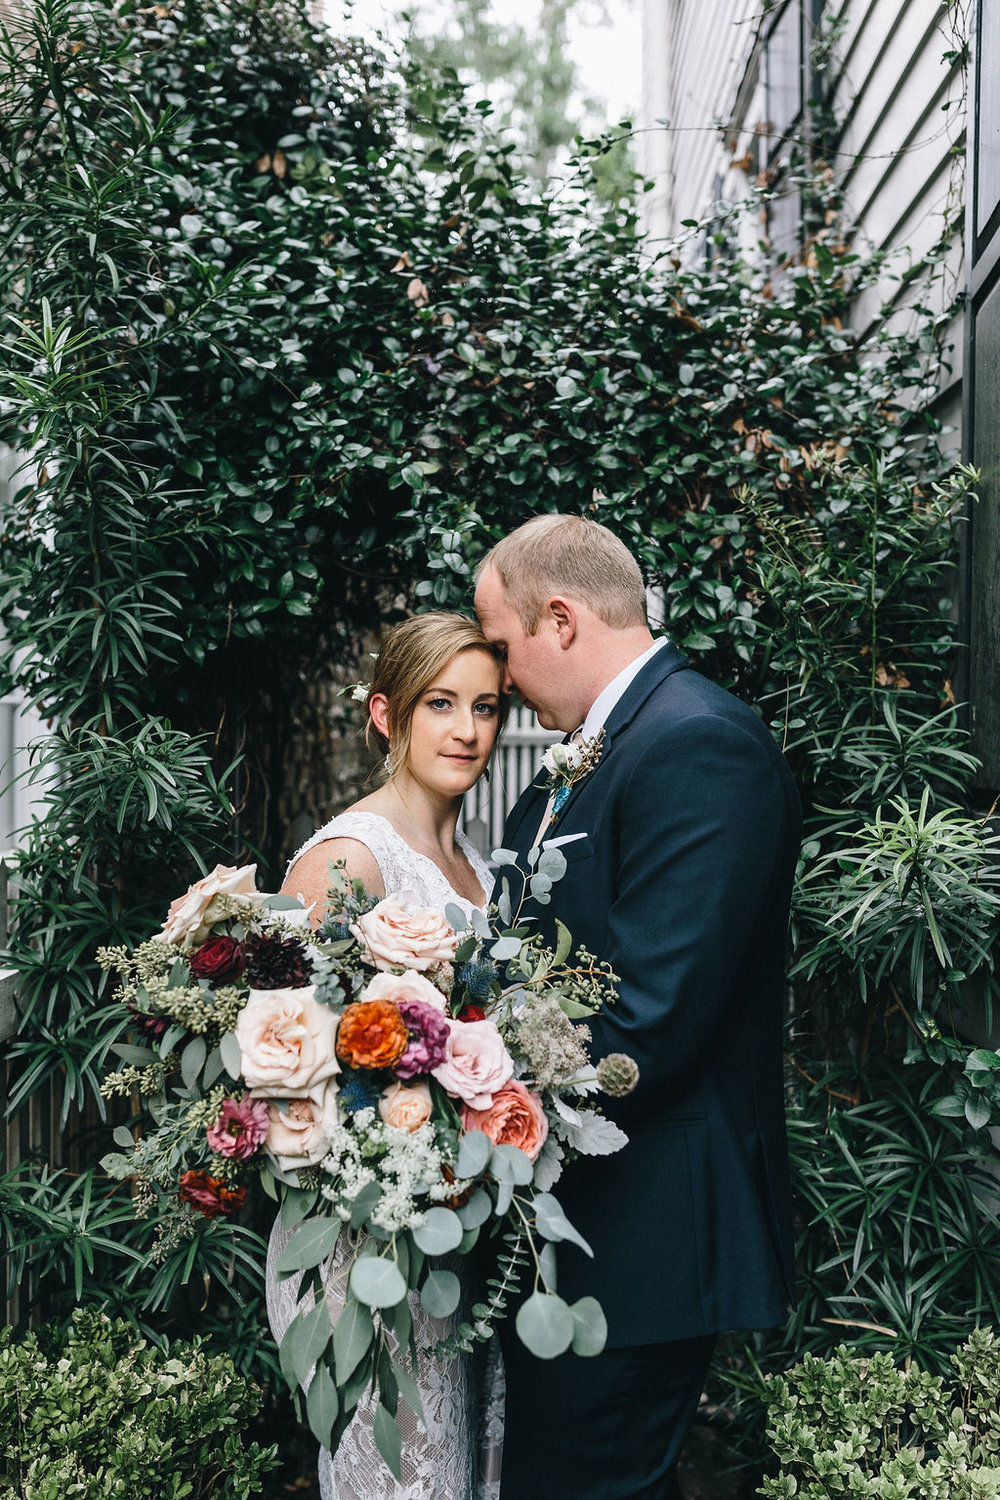 ivory_and_beau_savannah_bridal_shop_ivory_and_beau_couple_regan_and_brian_mackensey_alexander_photography_charles_h_morris_center_wedding_savannah_wedding_planner_savannah_florist_18.jpg